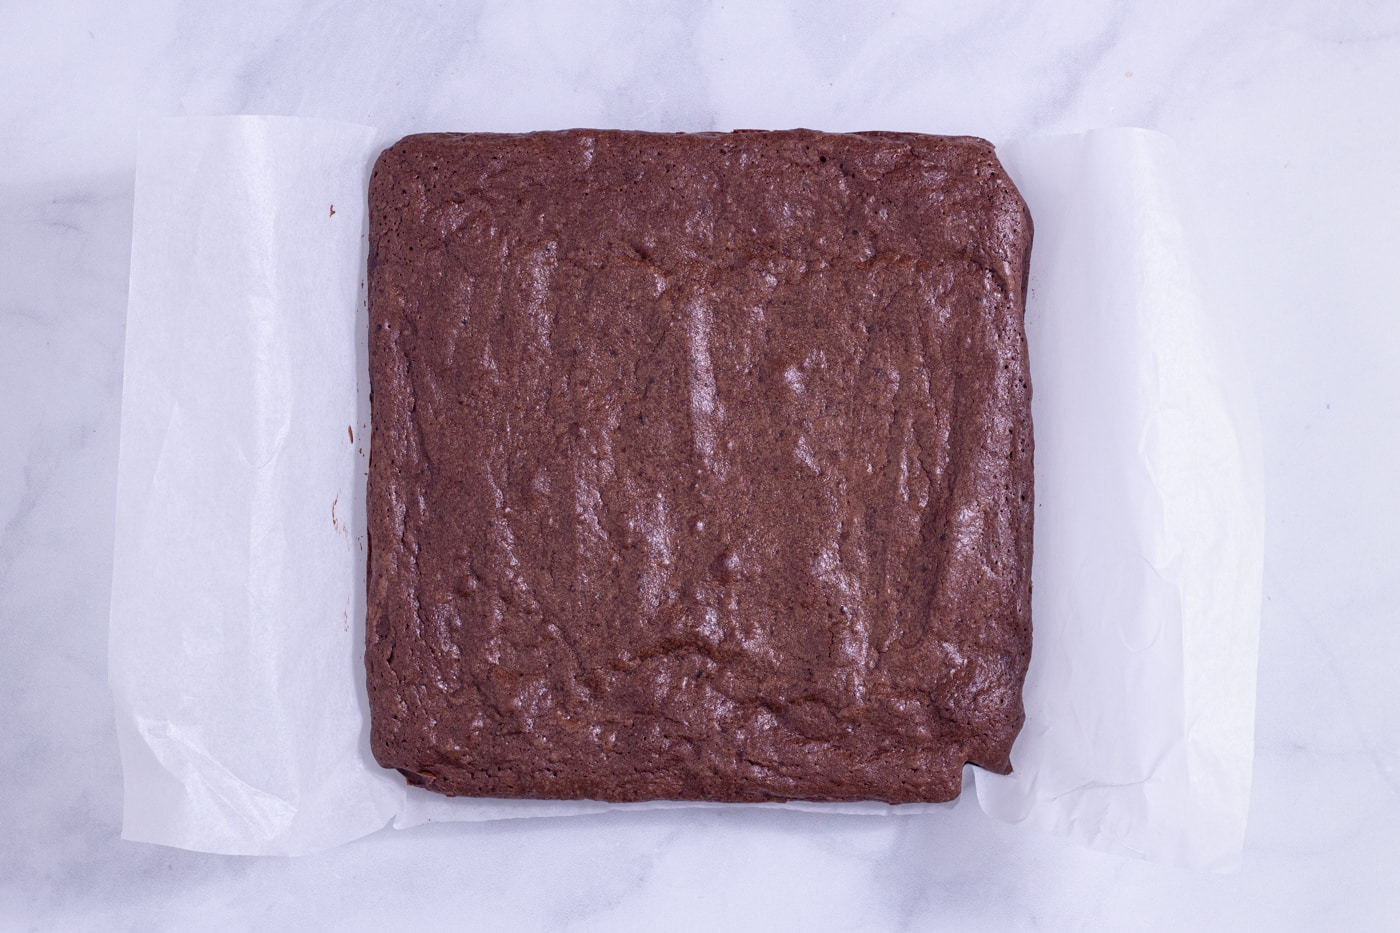 Overhead view of a square block of brownies made with reduced red wine.